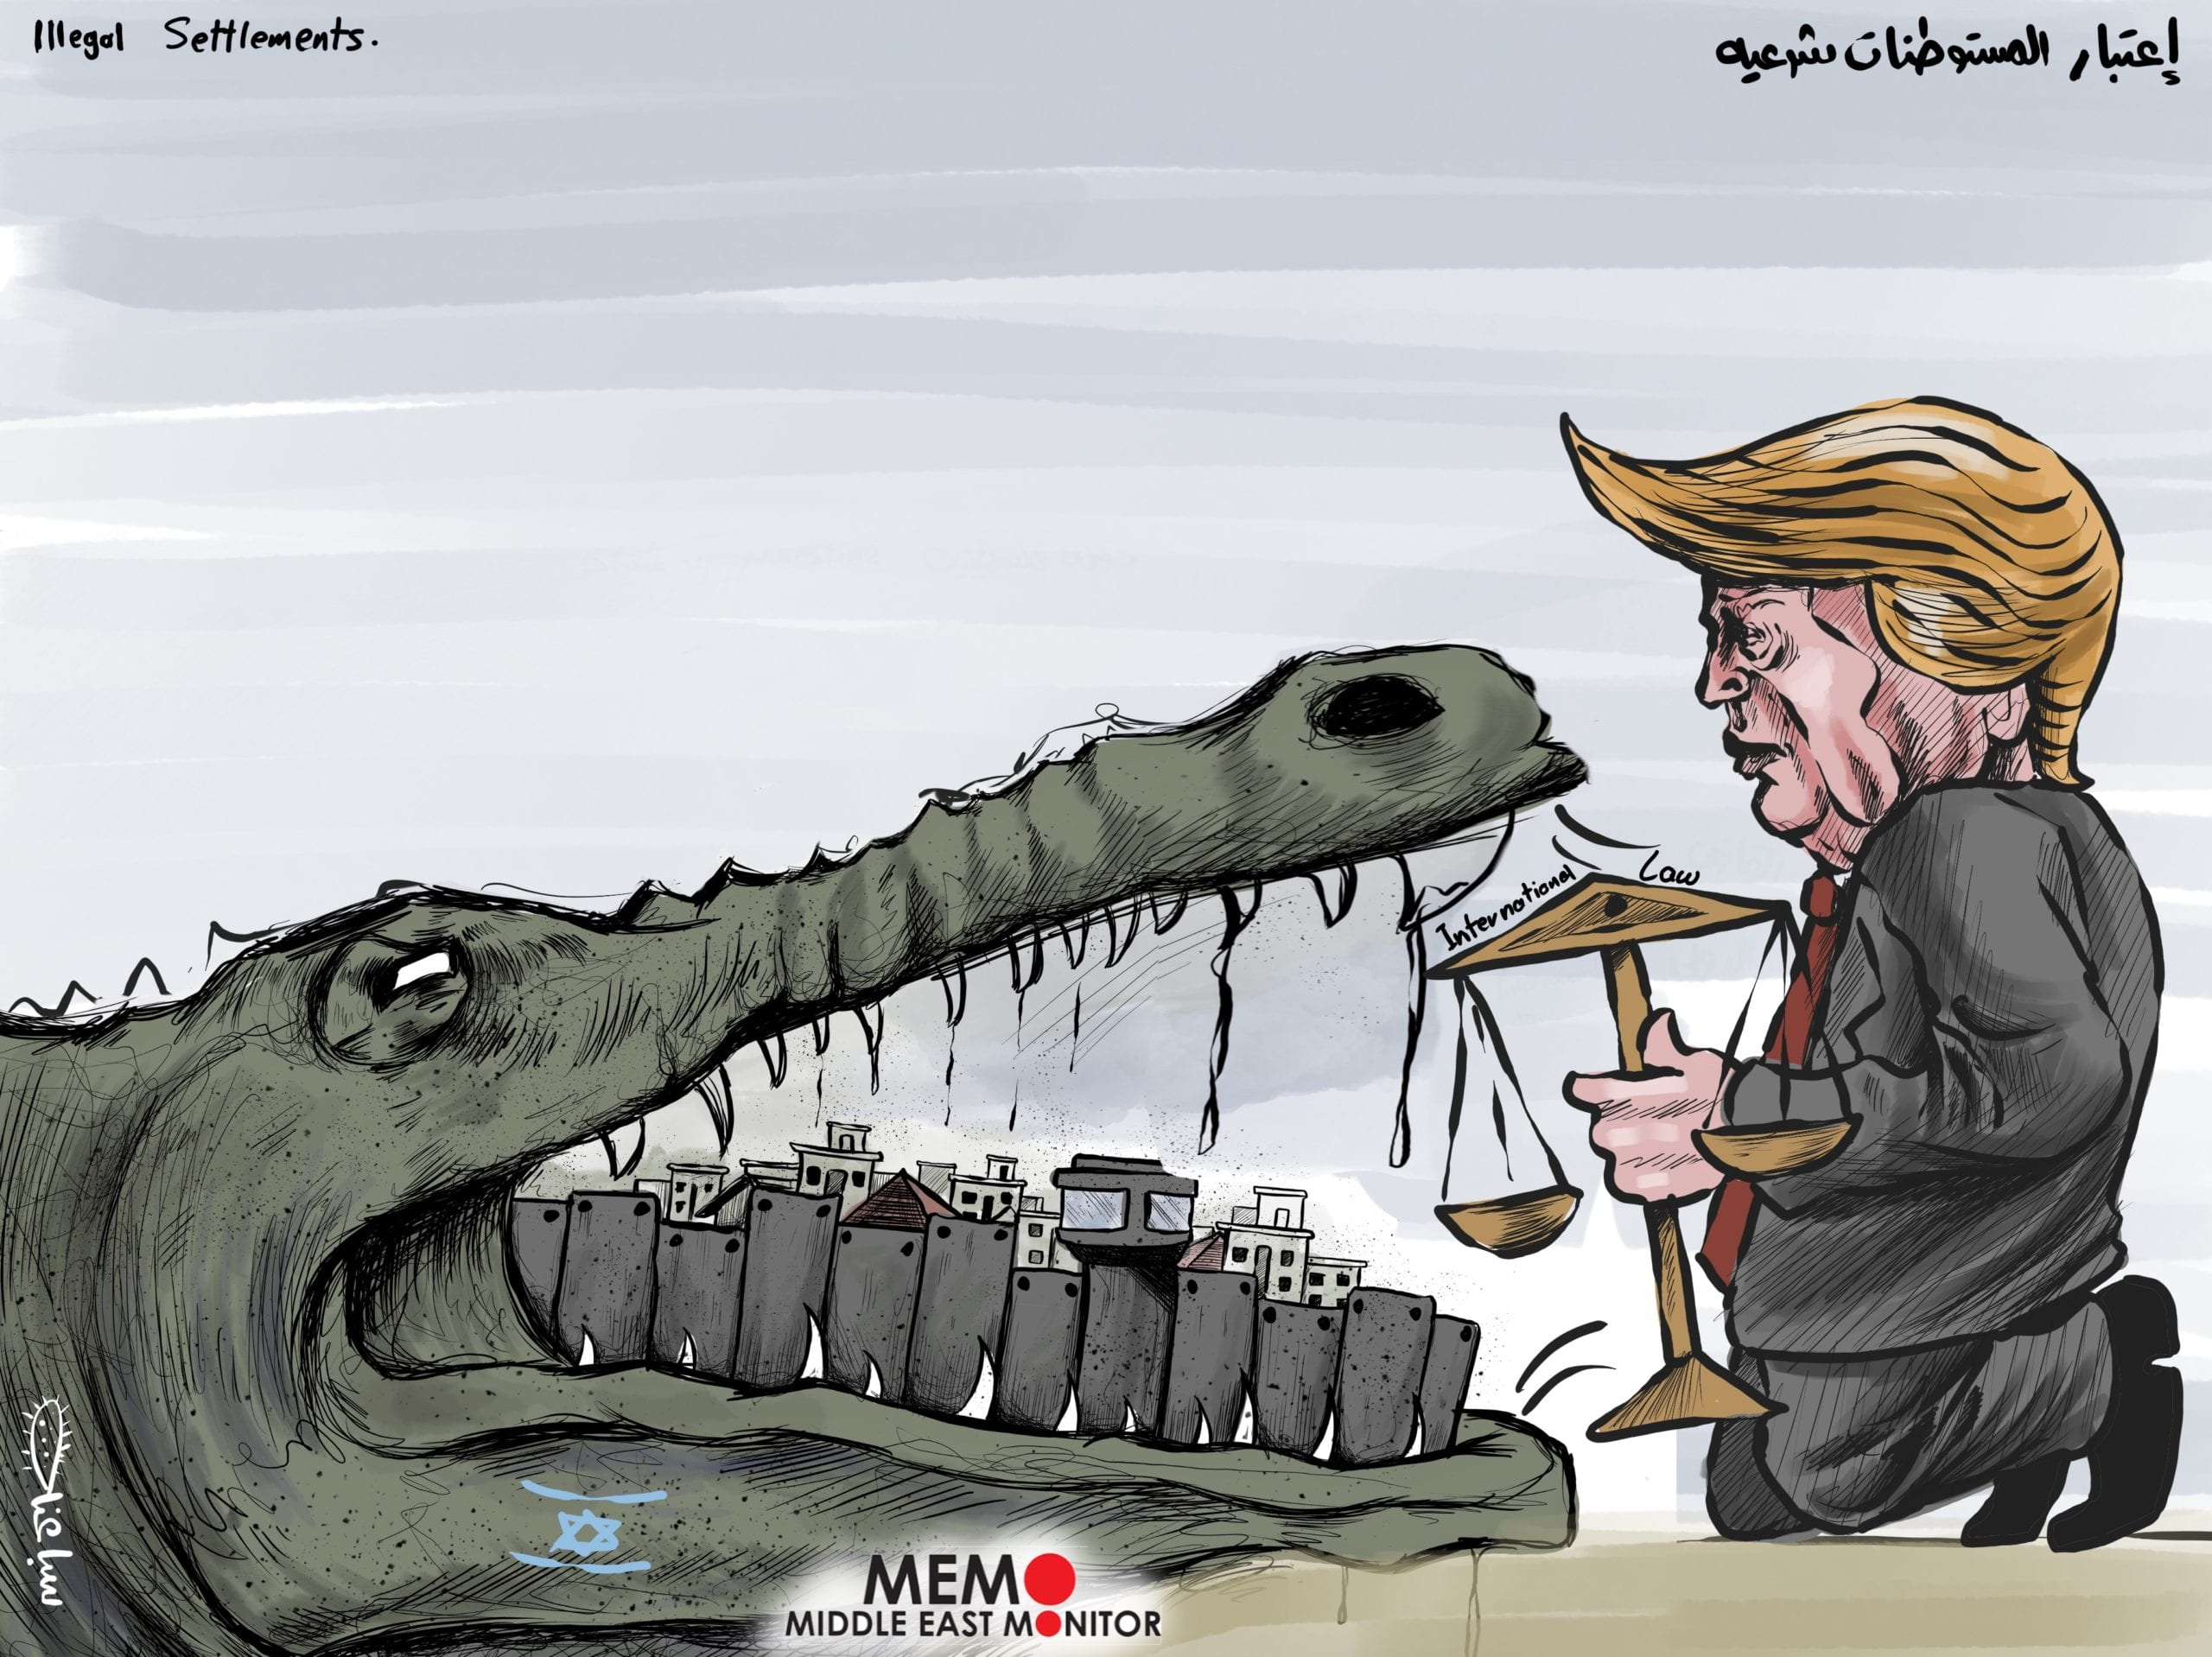 Trump doesn't care about International Law and makes illegal settlements legal - Cartoon [Sabaaneh/MiddleEastMonitor]